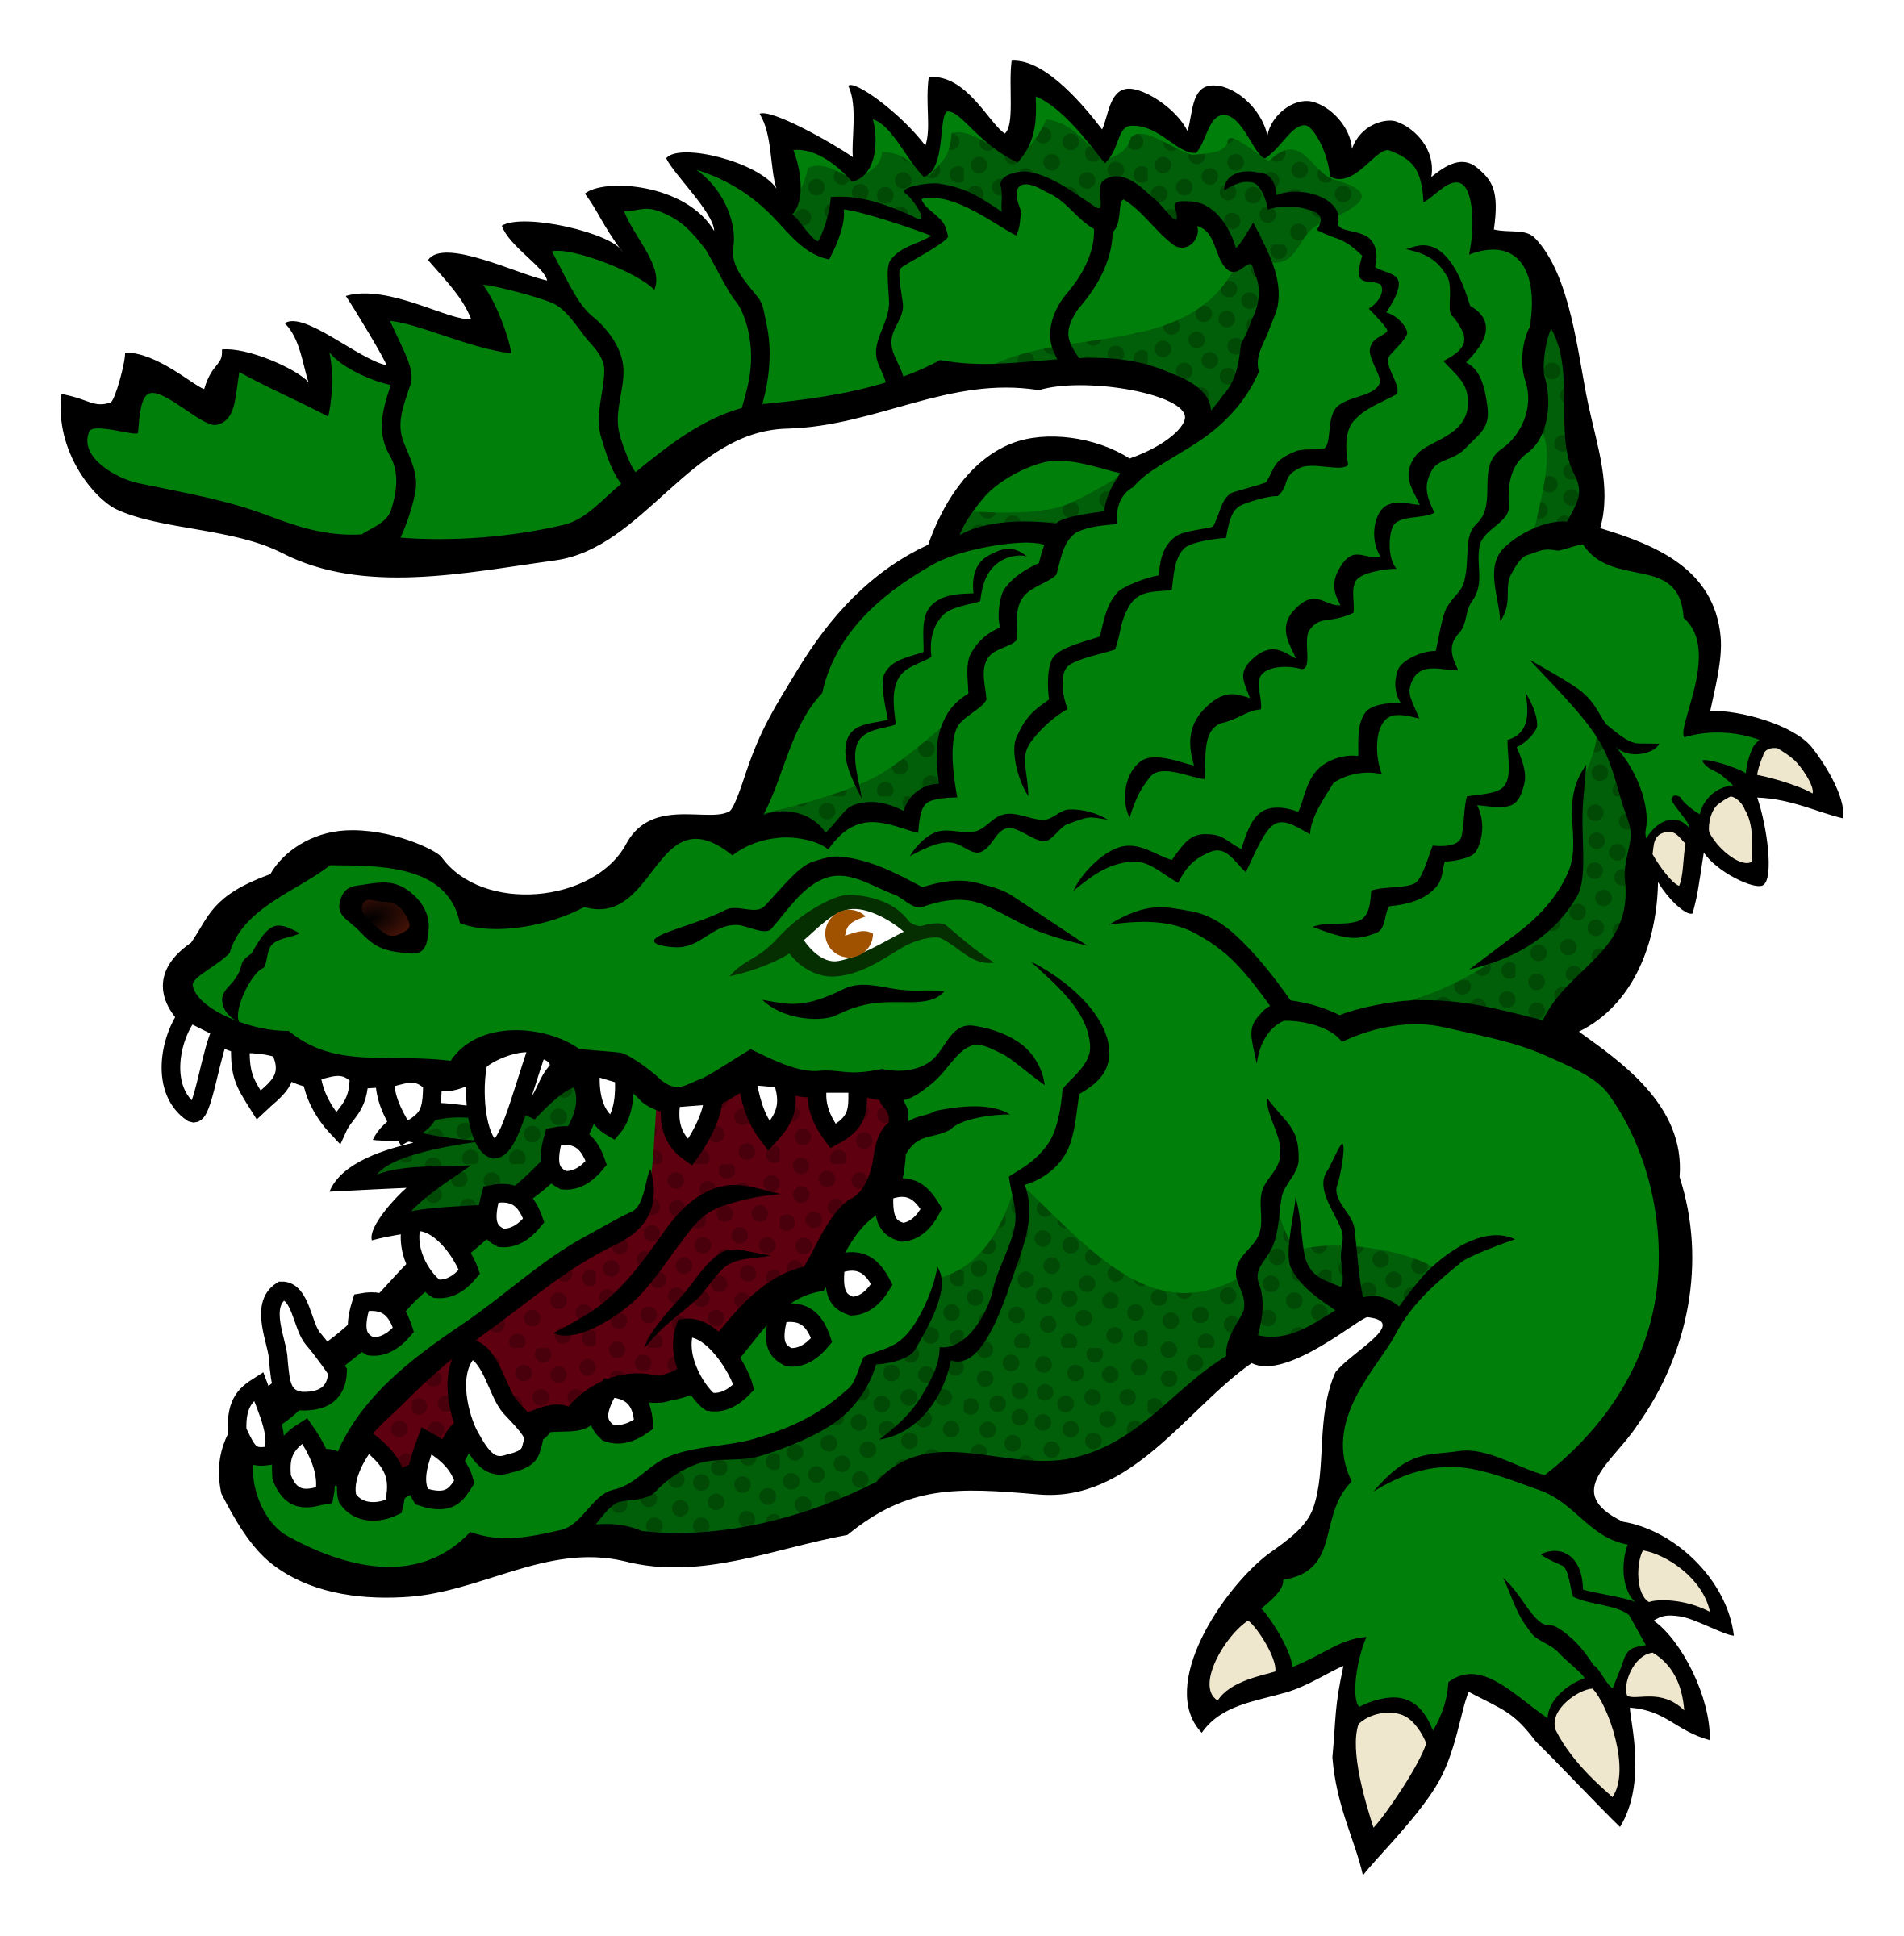 Gator clipart easy. Silhouette at getdrawings com